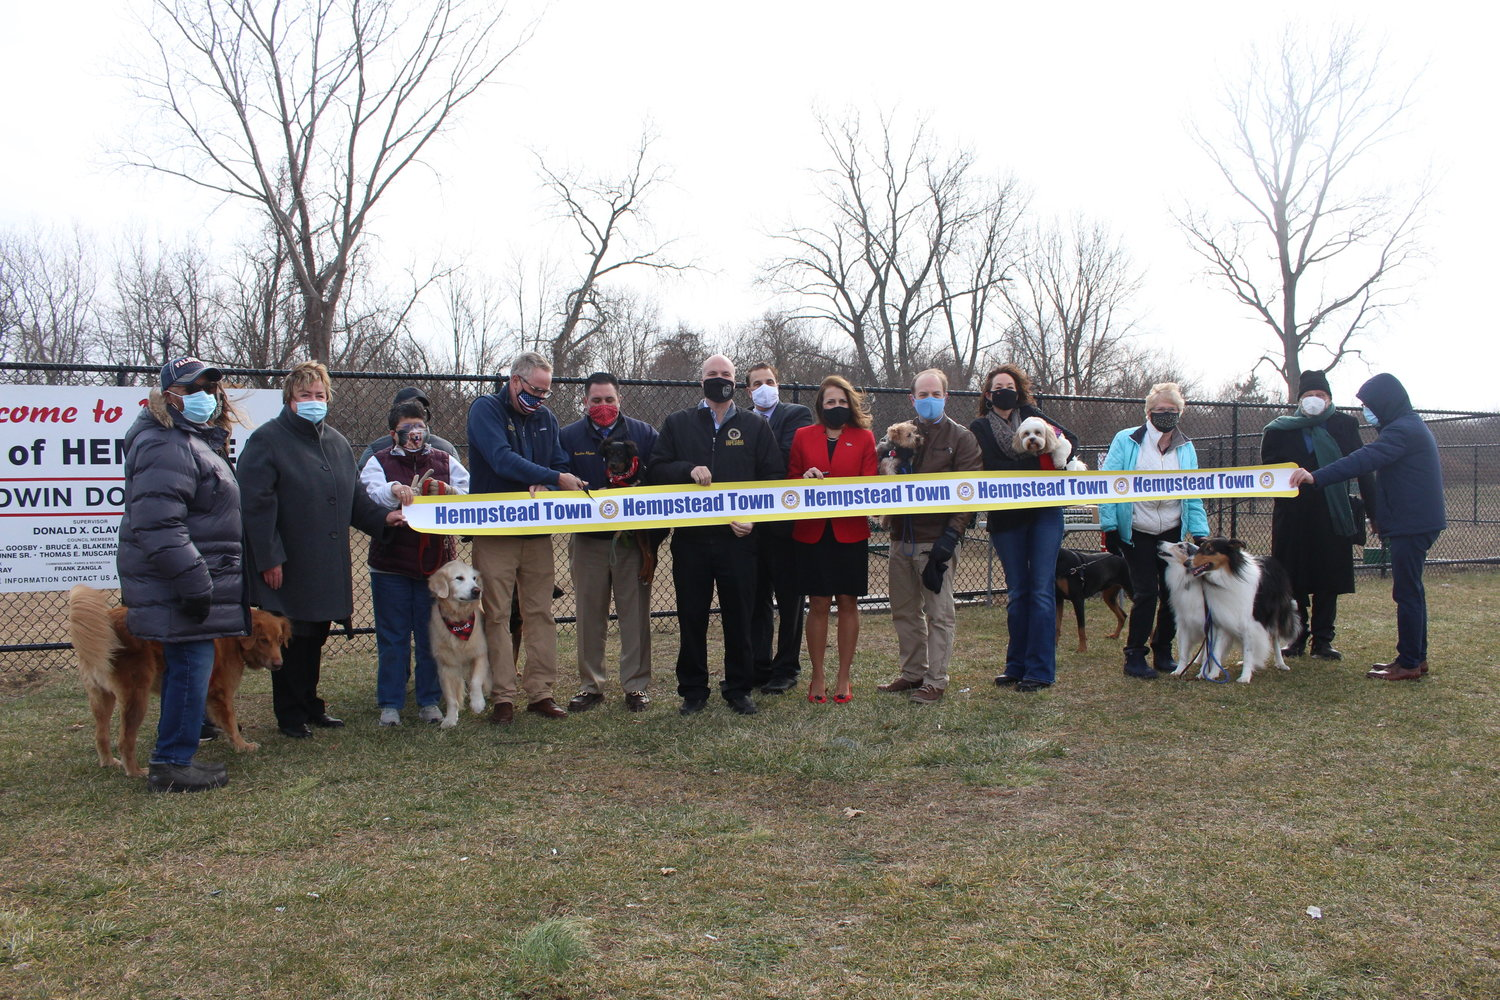 Dog owners from around town joined elected officials to unveil the new facility on Jan. 15.